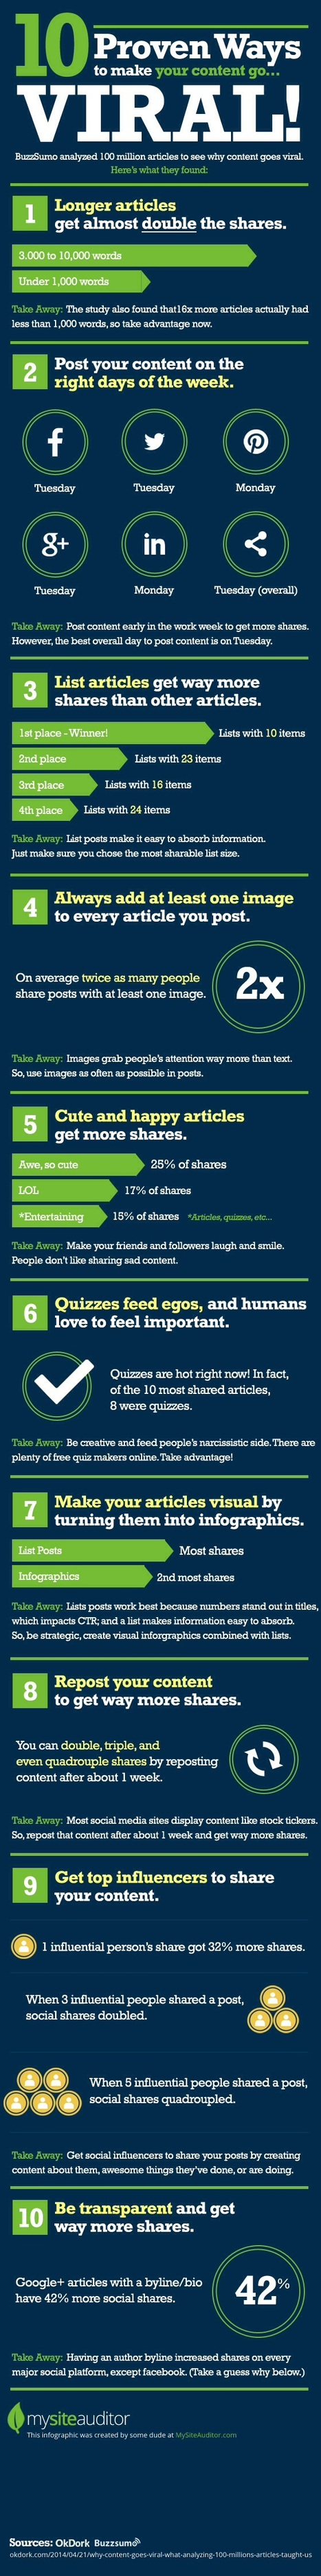 10 Proven Ways to Make Your Content Go Viral [Infographic] | Mentalist | Scoop.it